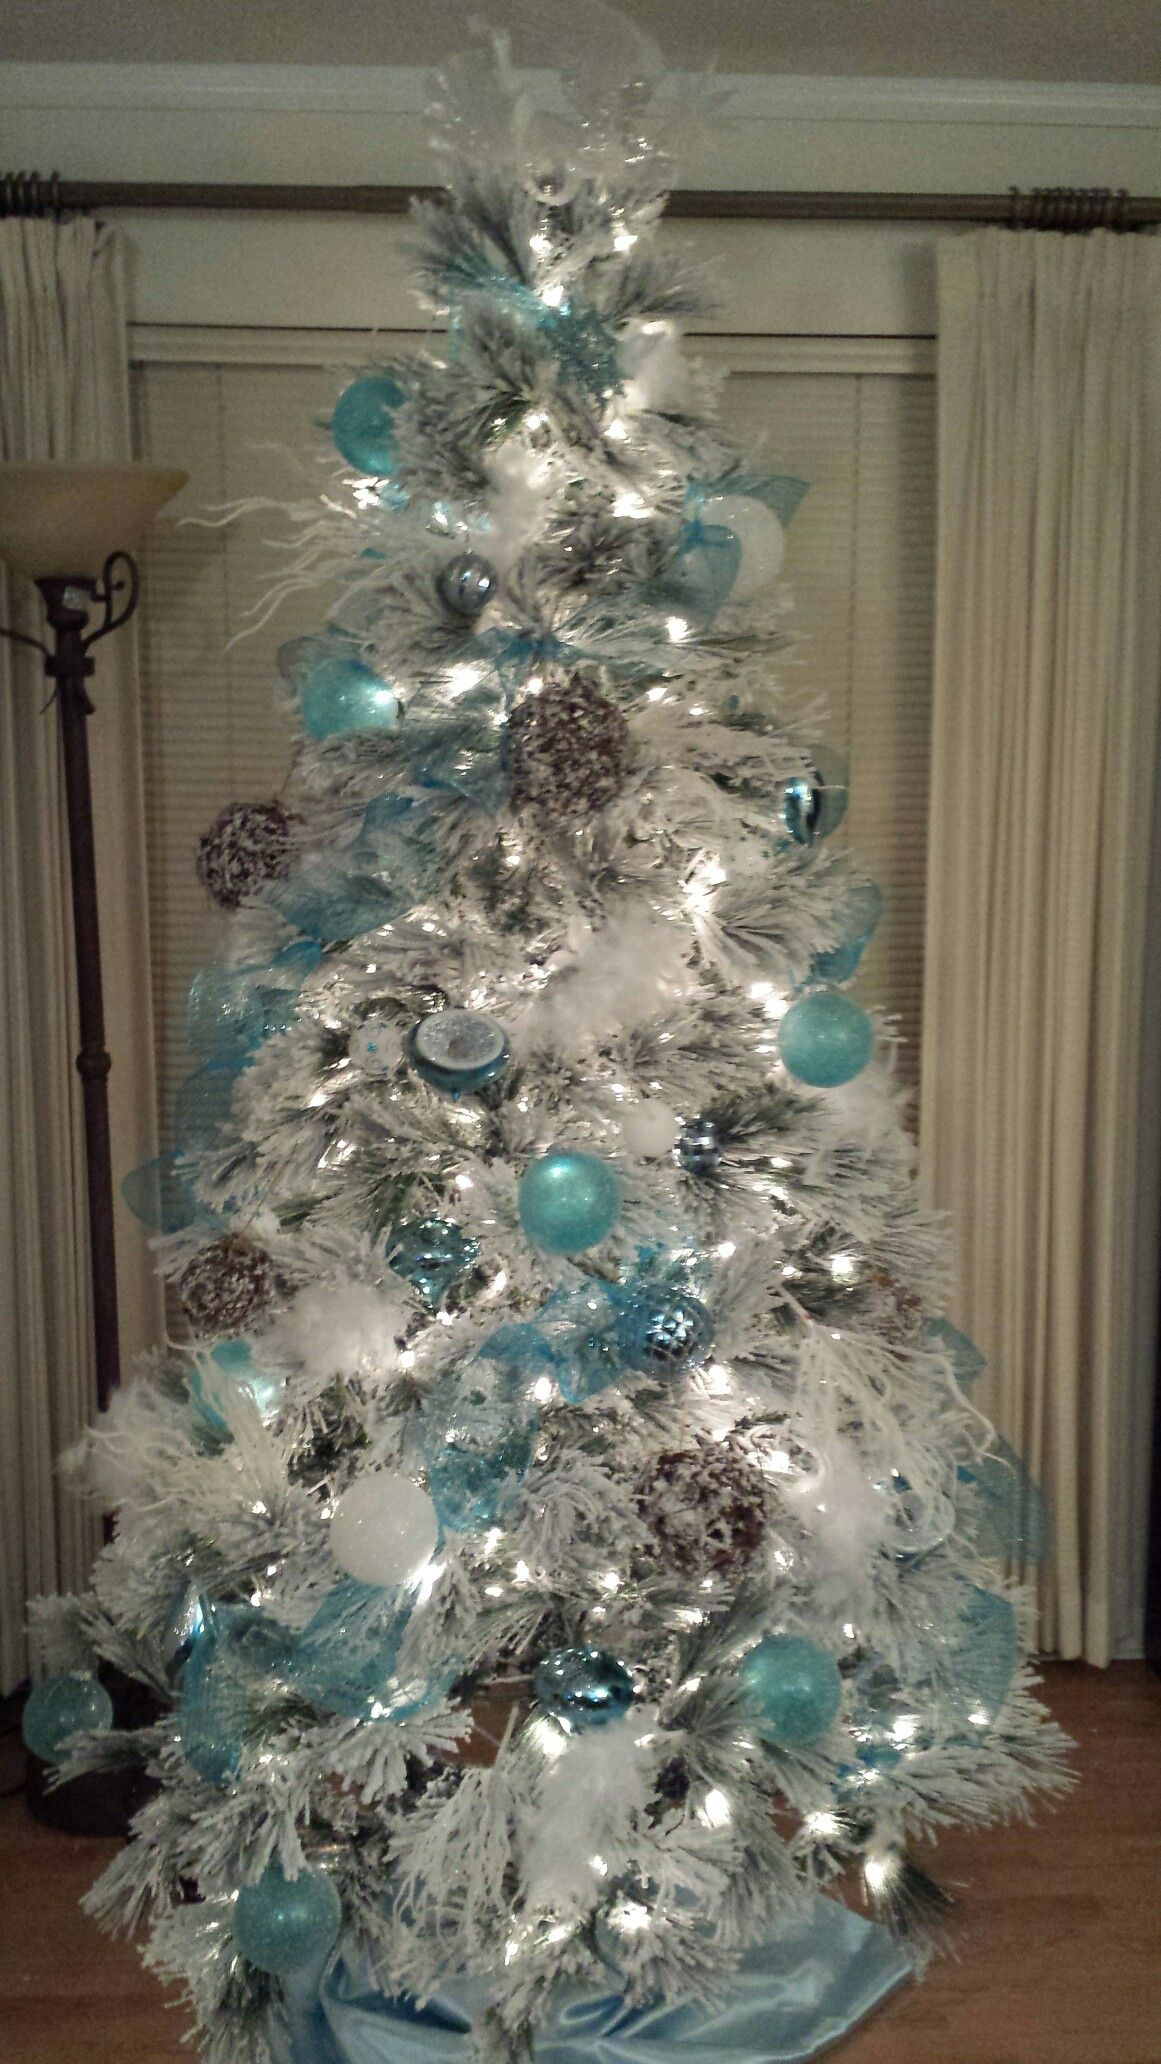 Snow White Flocked Christmas Tree Decorated With Aqua Blue